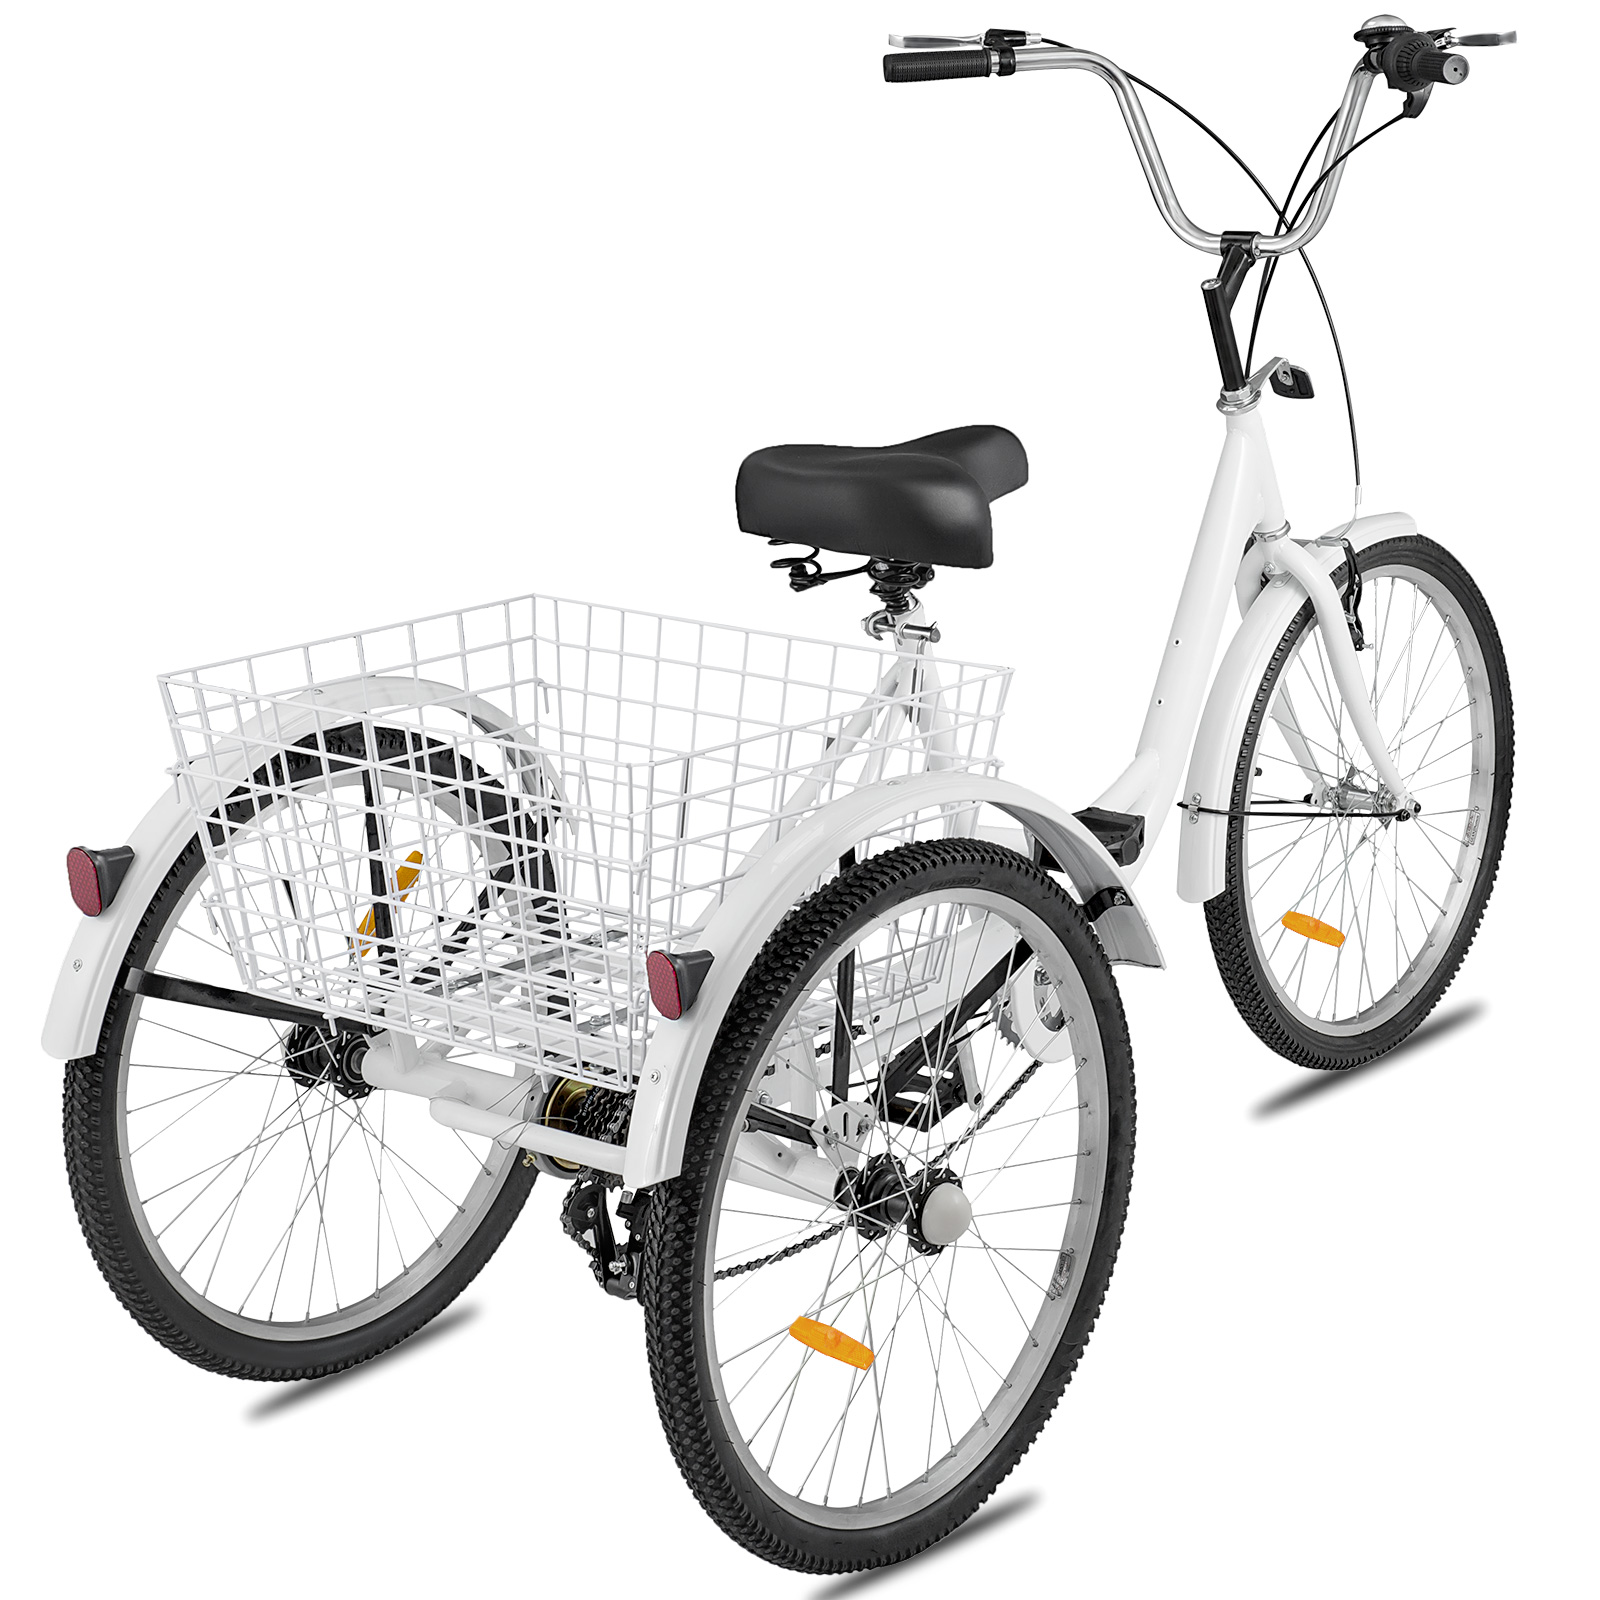 20-24-26-034-Adult-Tricycle-1-7-Speed-3-Wheel-Large-Basket-For-Shopping-Optional thumbnail 239